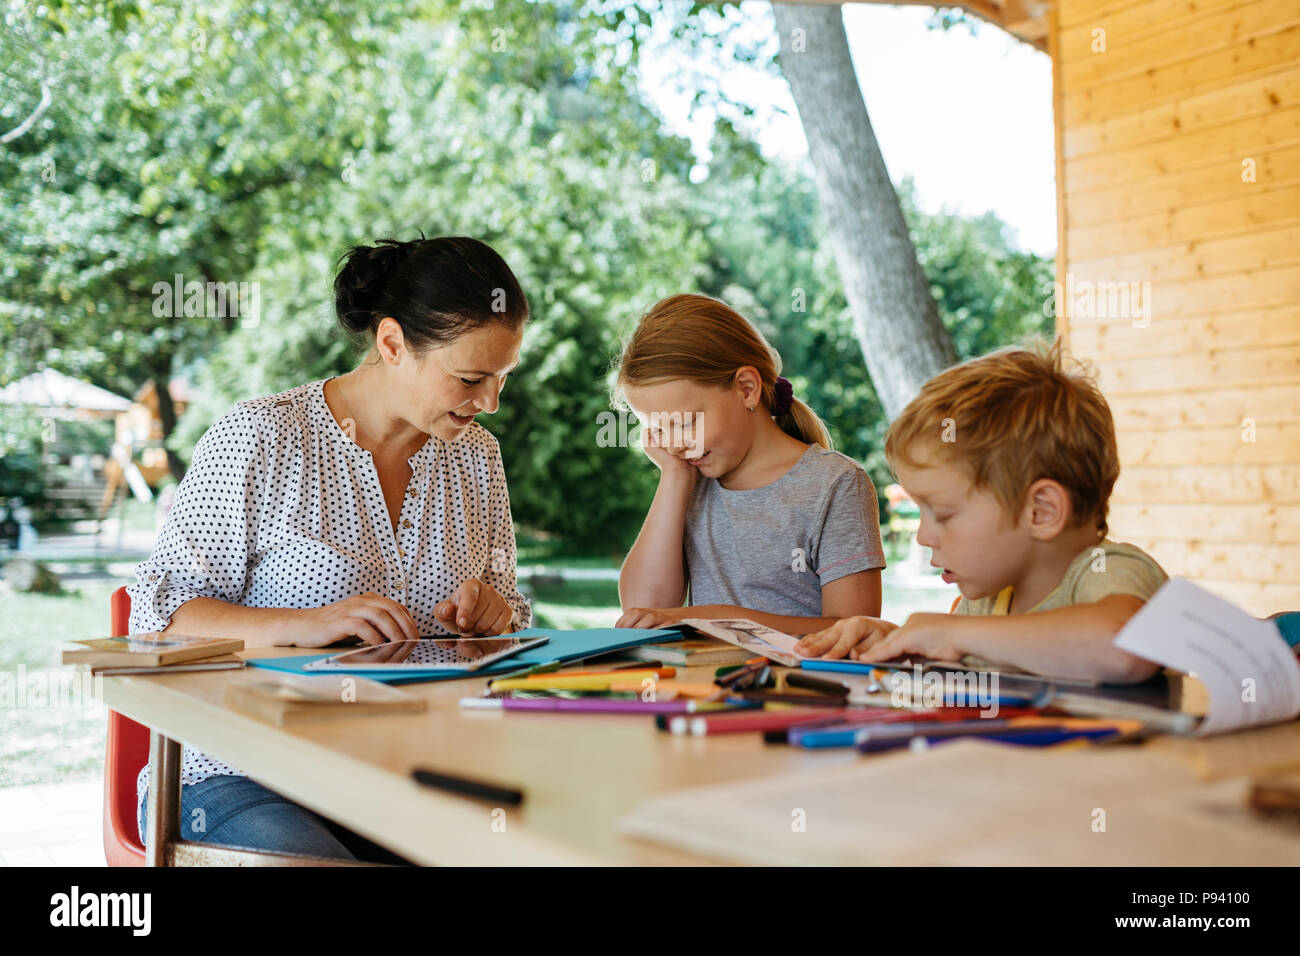 Children having fun reading a book with their mother outside in a park. Mother homeschooling her children and reading with them. - Stock Image